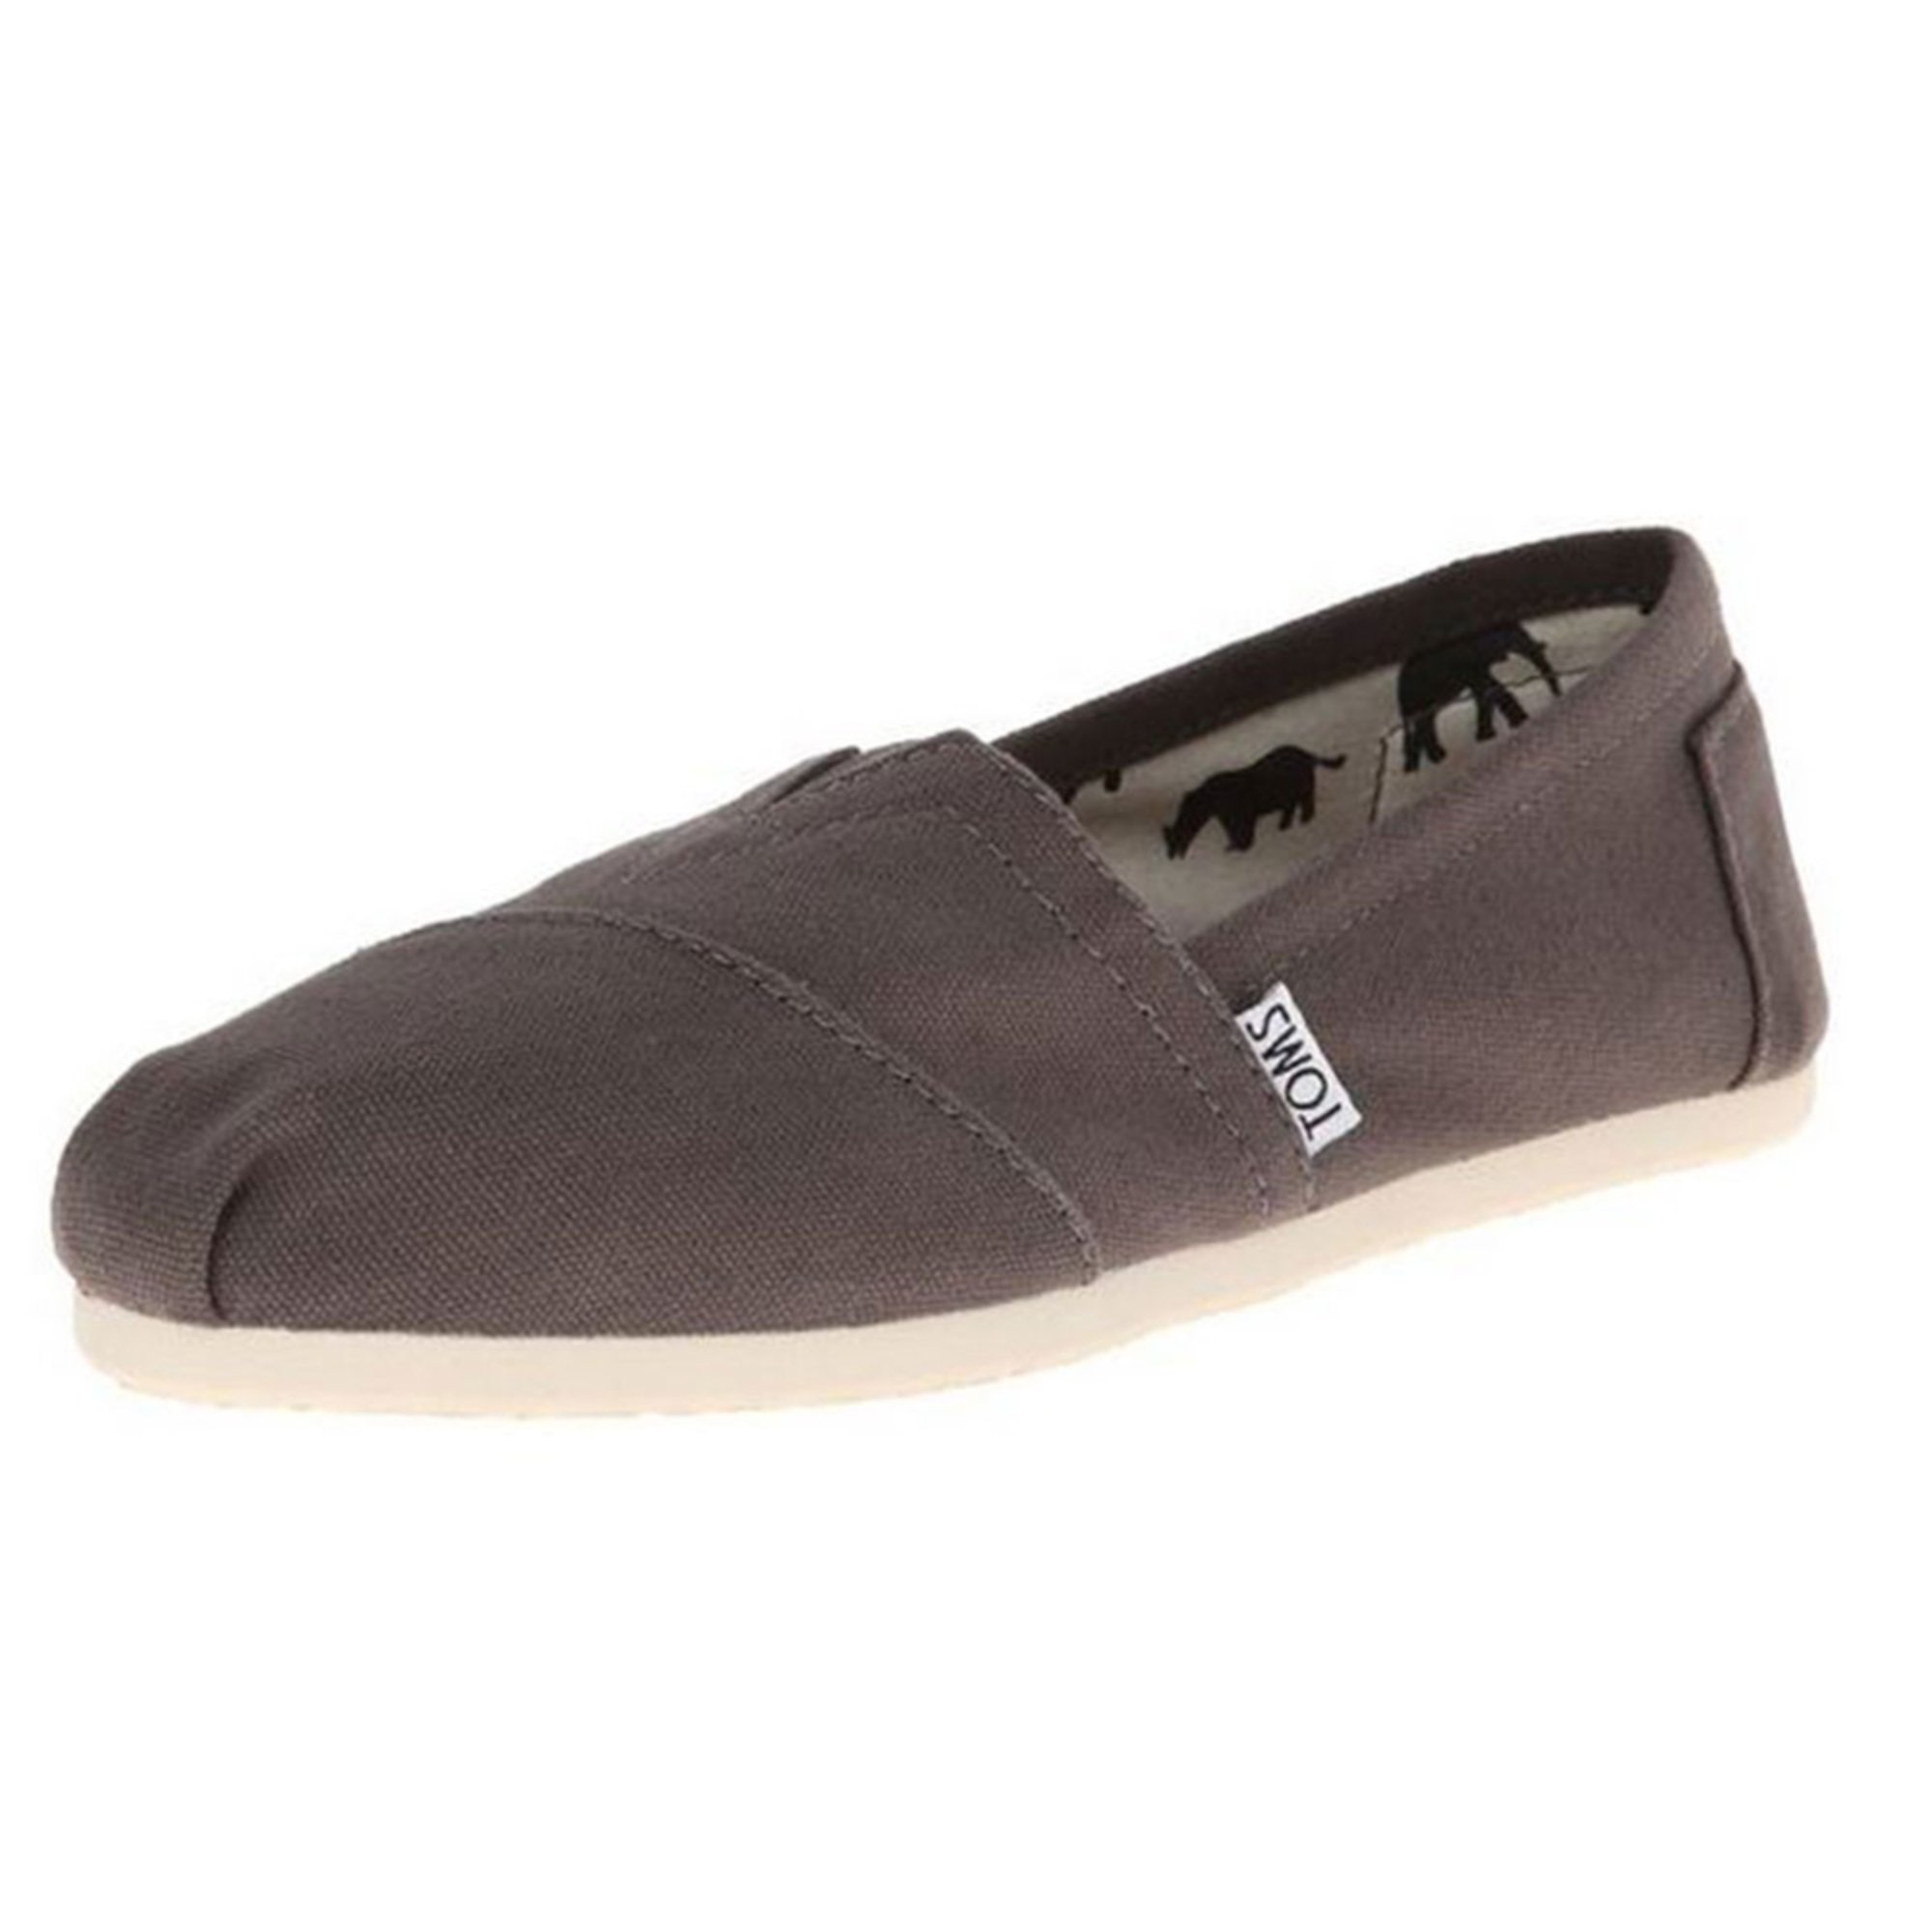 494cb76e2dcf0 Toms Women's Canvas Classic Slip On Shoe | Women's Slip On Shoes ...